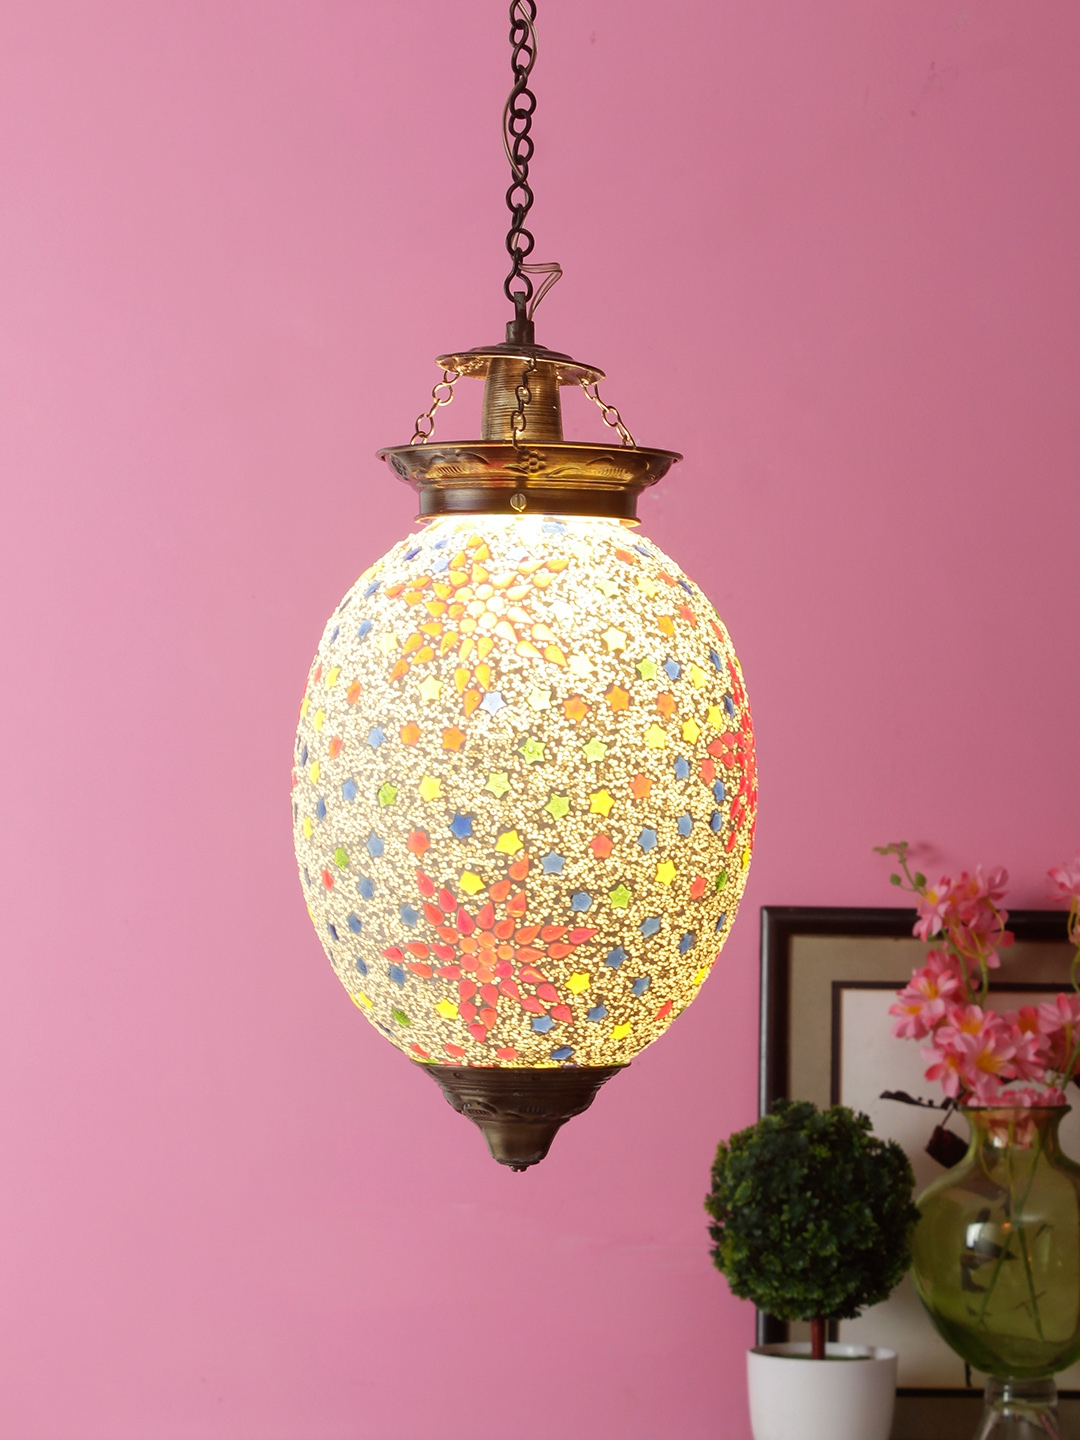 Aesthetic Home Solutions Gold Toned Textured Pendant Ceiling Lamp